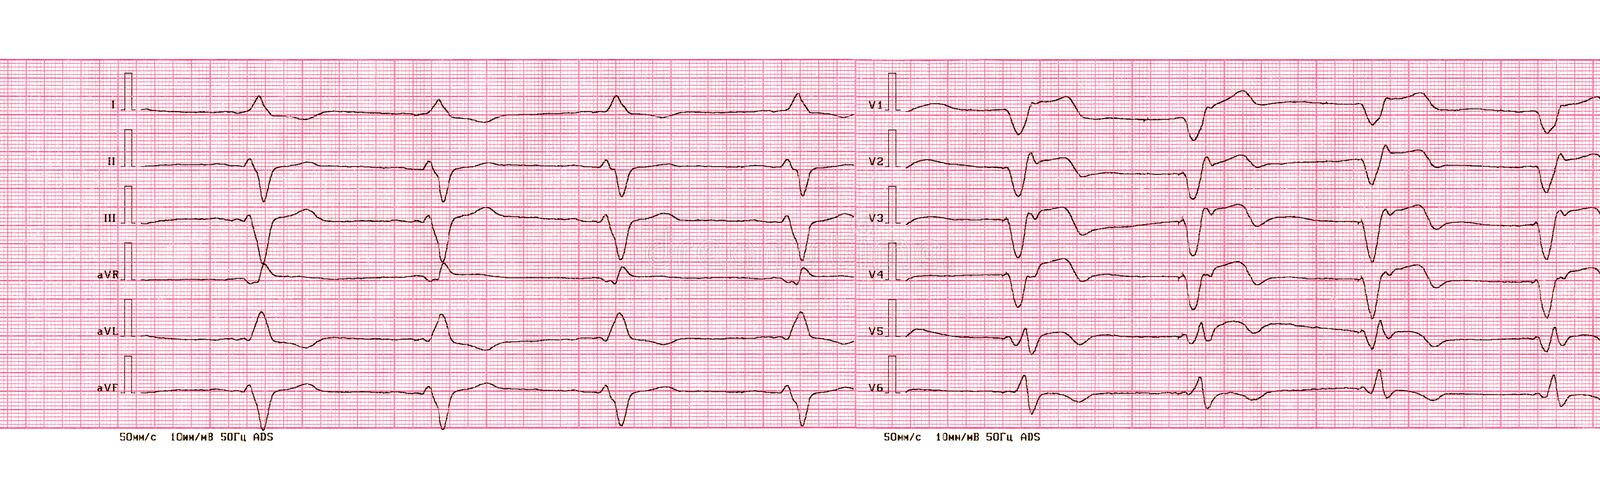 ECG with rhythm of artificial pacemaker ventricular pacing. The ECG tape with the rhythm of an artificial pacemaker the ventricular pacing stock image